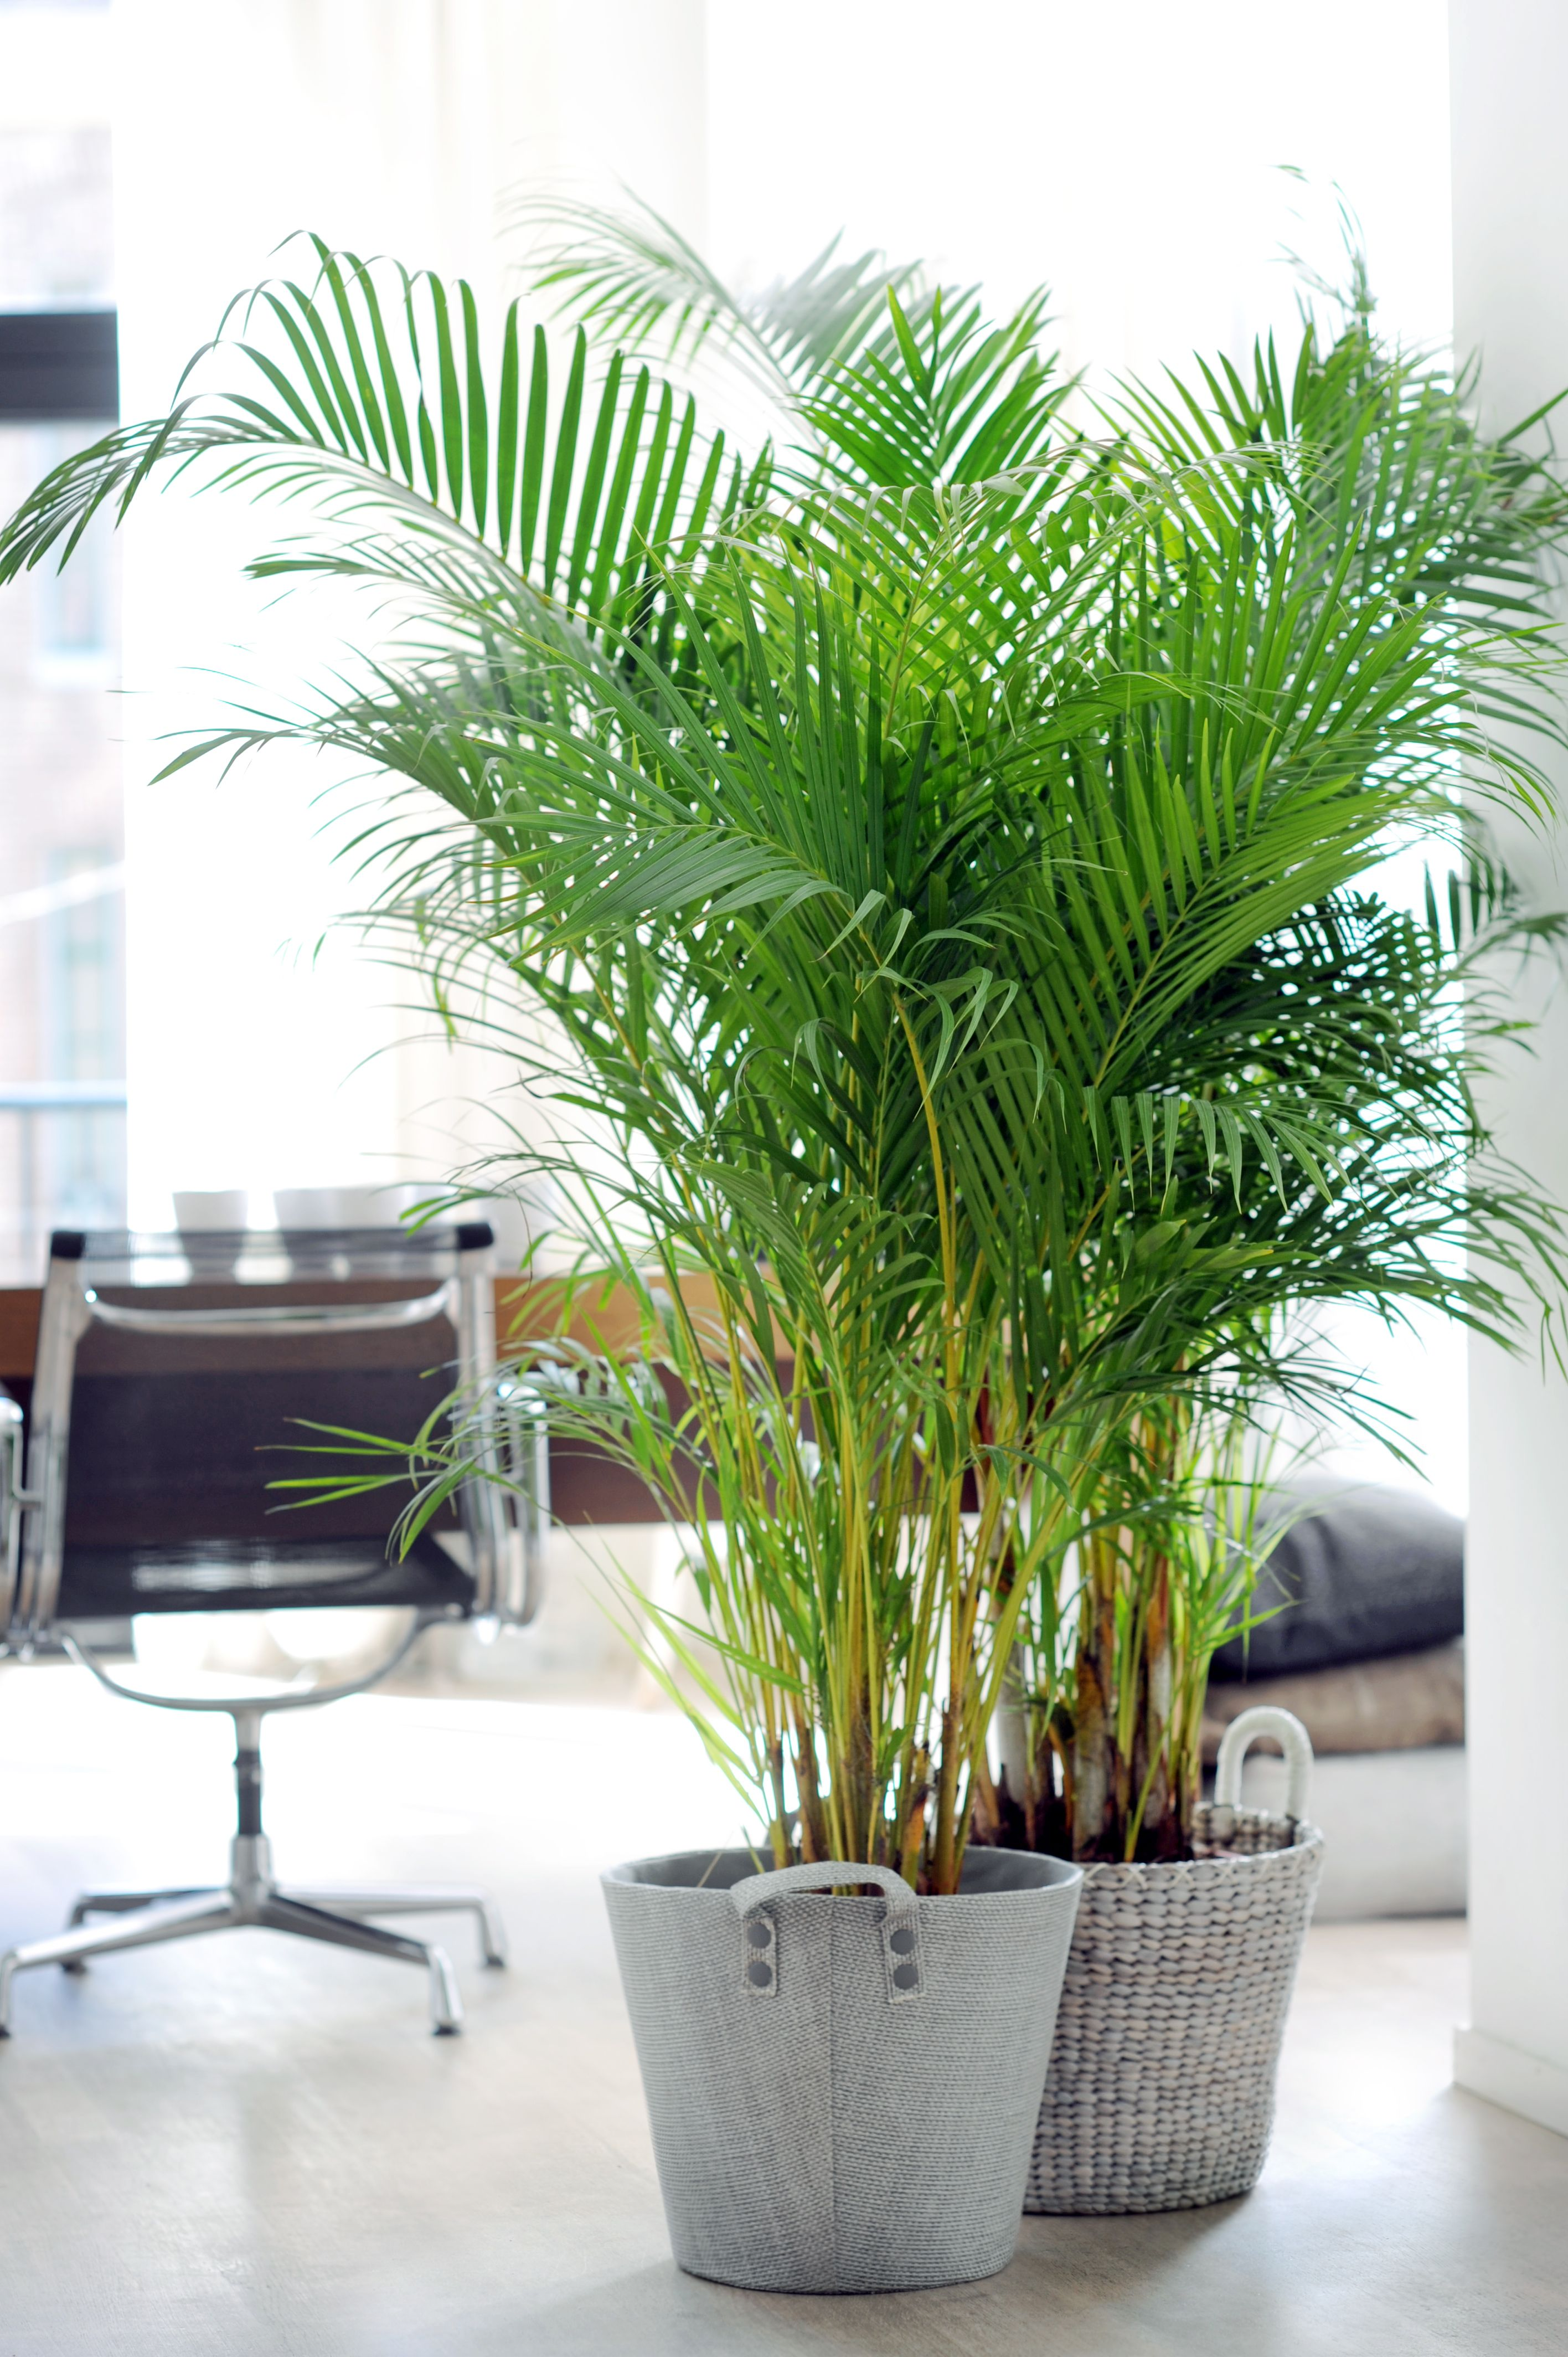 Chrysalidocarpus Space For Life Areca Rempoté Dans Pot Lechuza Quadro Taupe Oxygenate Tropical